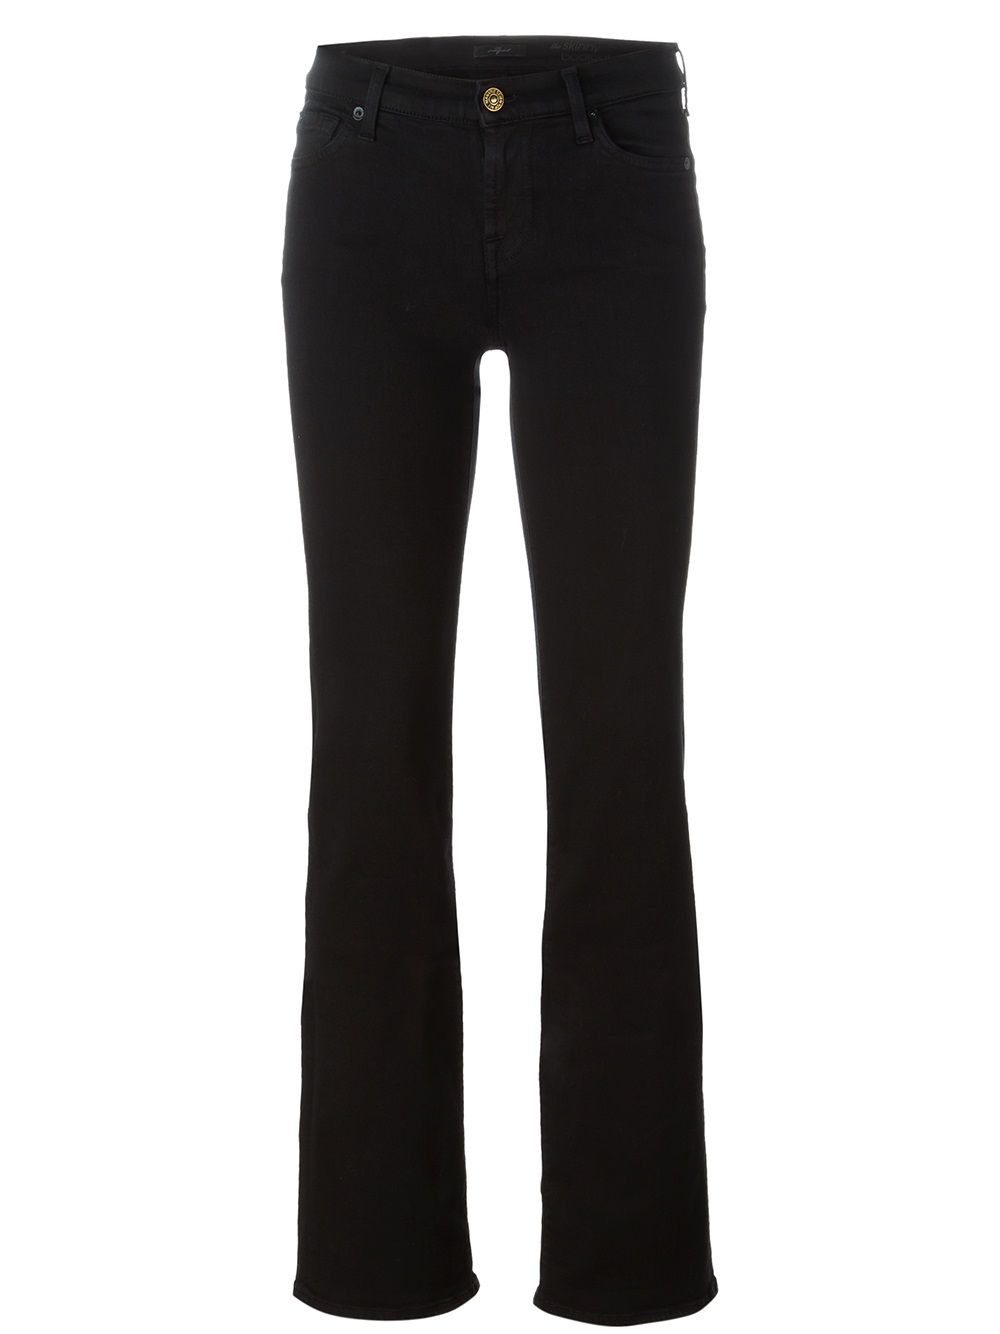 7 For All Mankind Slim Bootcut Jeans - Black